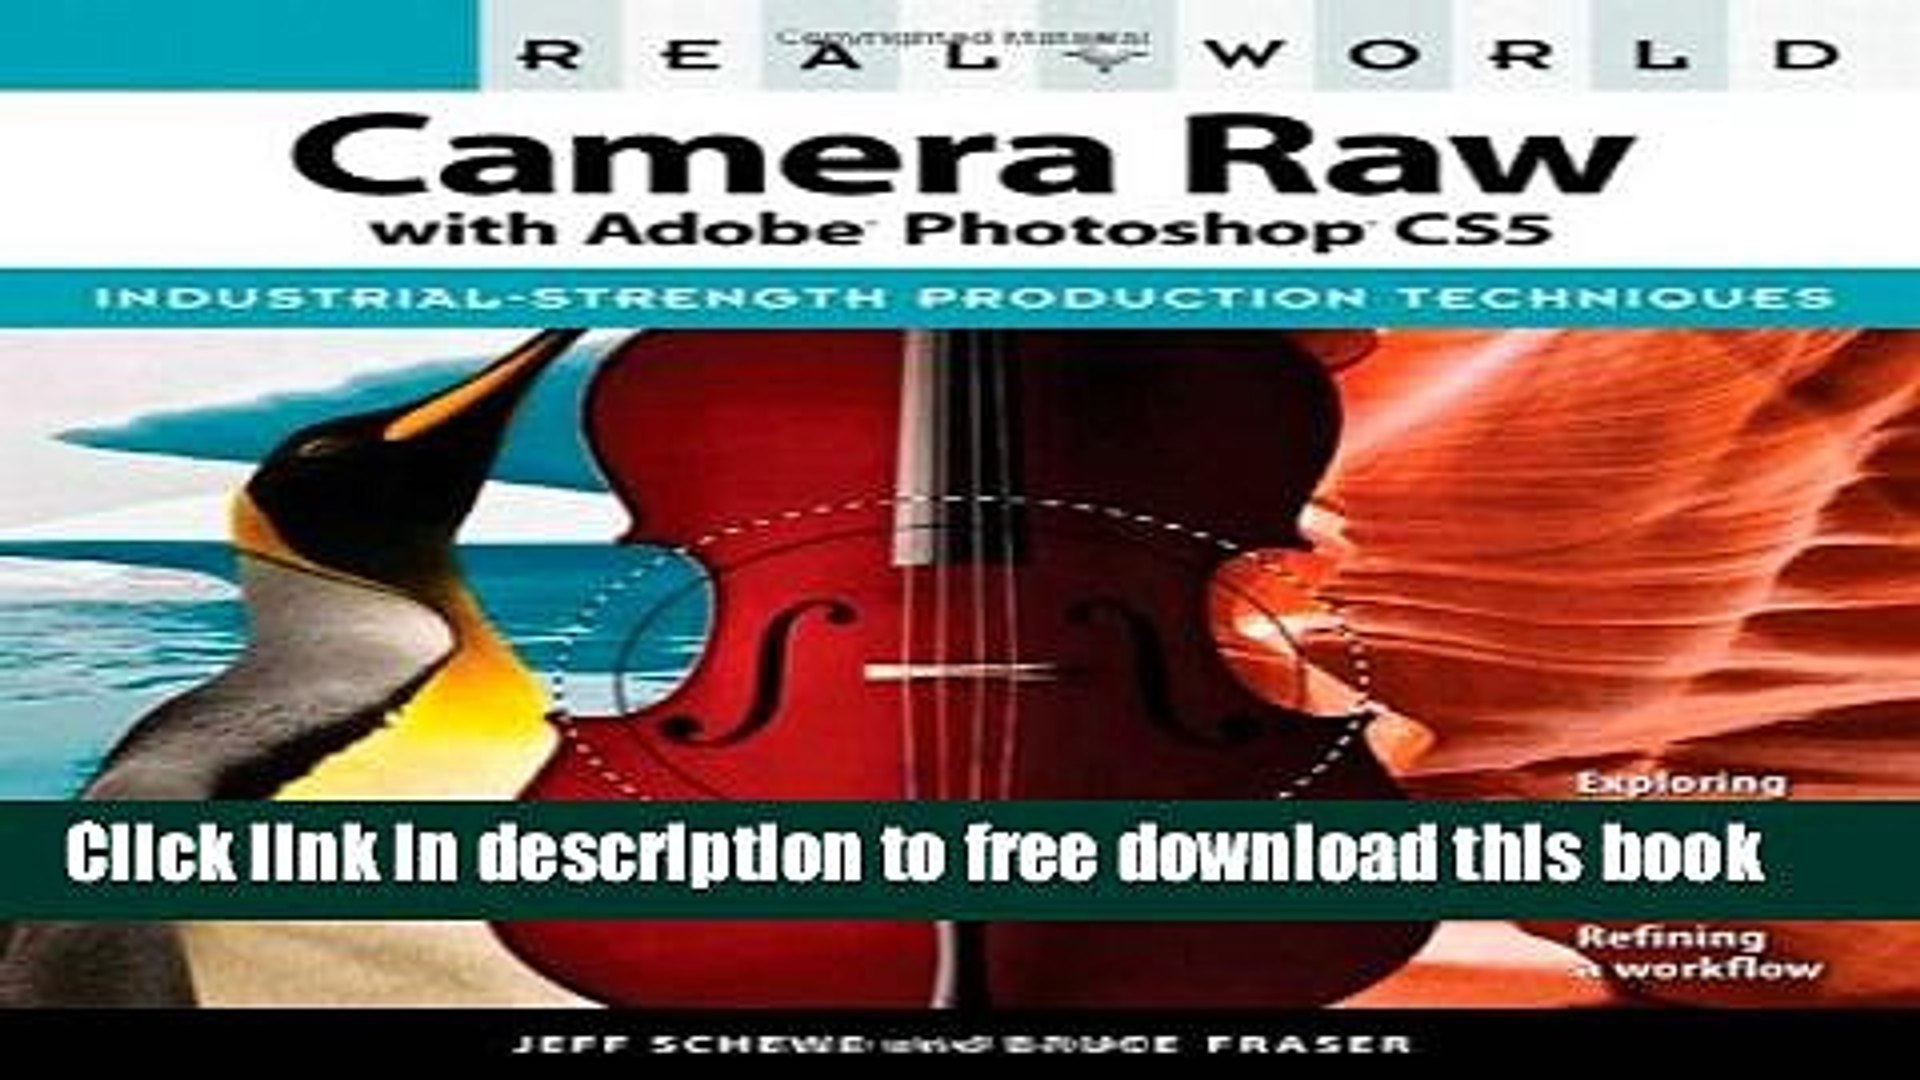 [Download] Real World Camera Raw with Adobe Photoshop CS5 Paperback Free